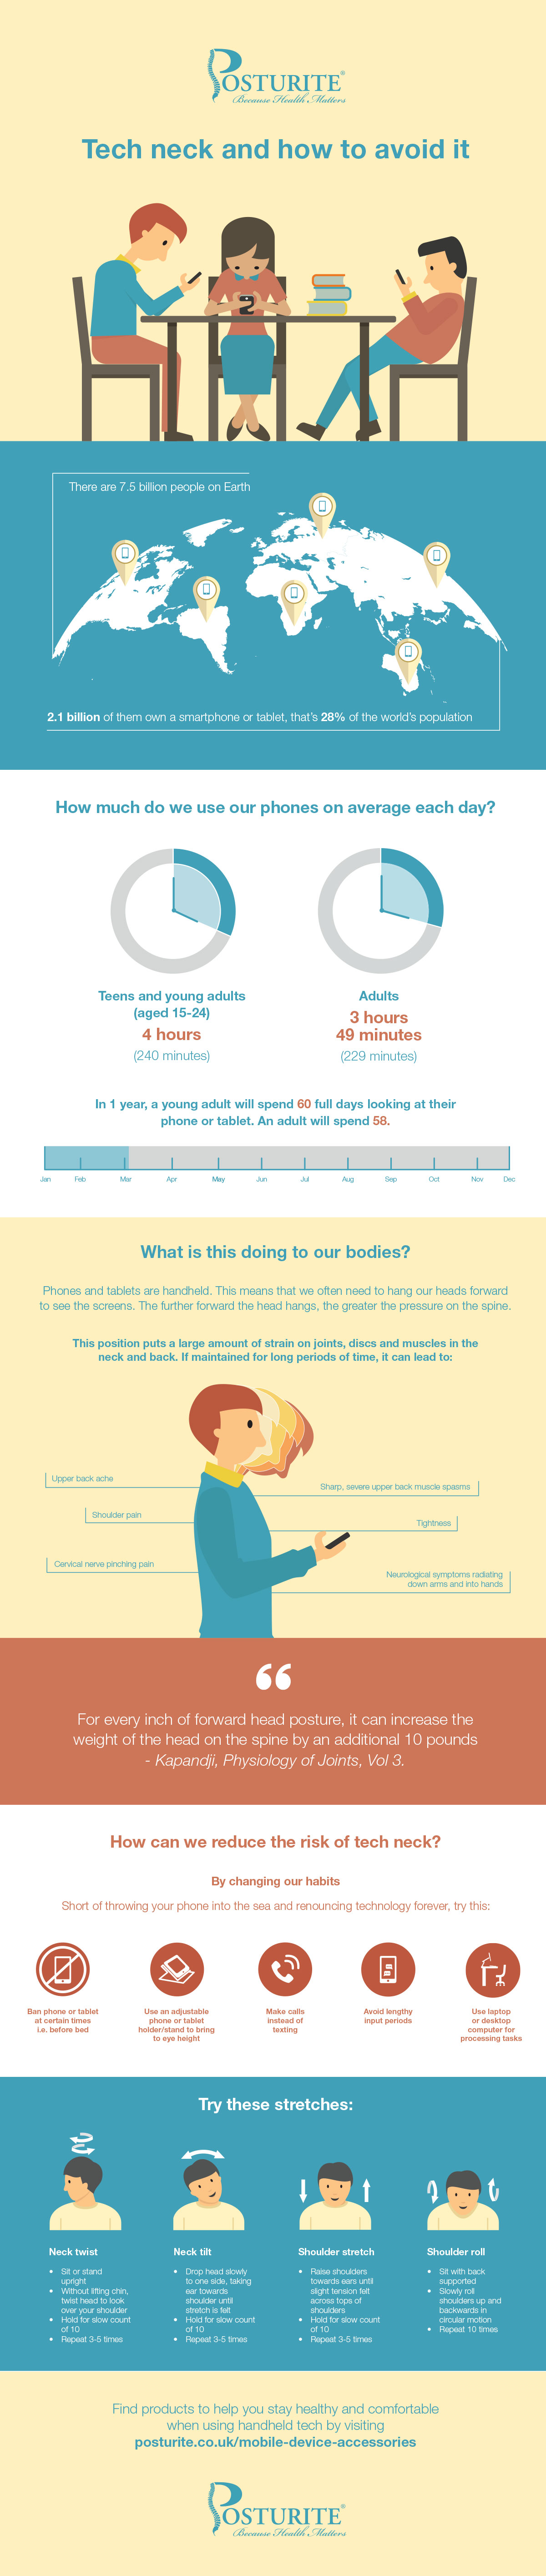 Download our 'tech neck and how to avoid it' infographic